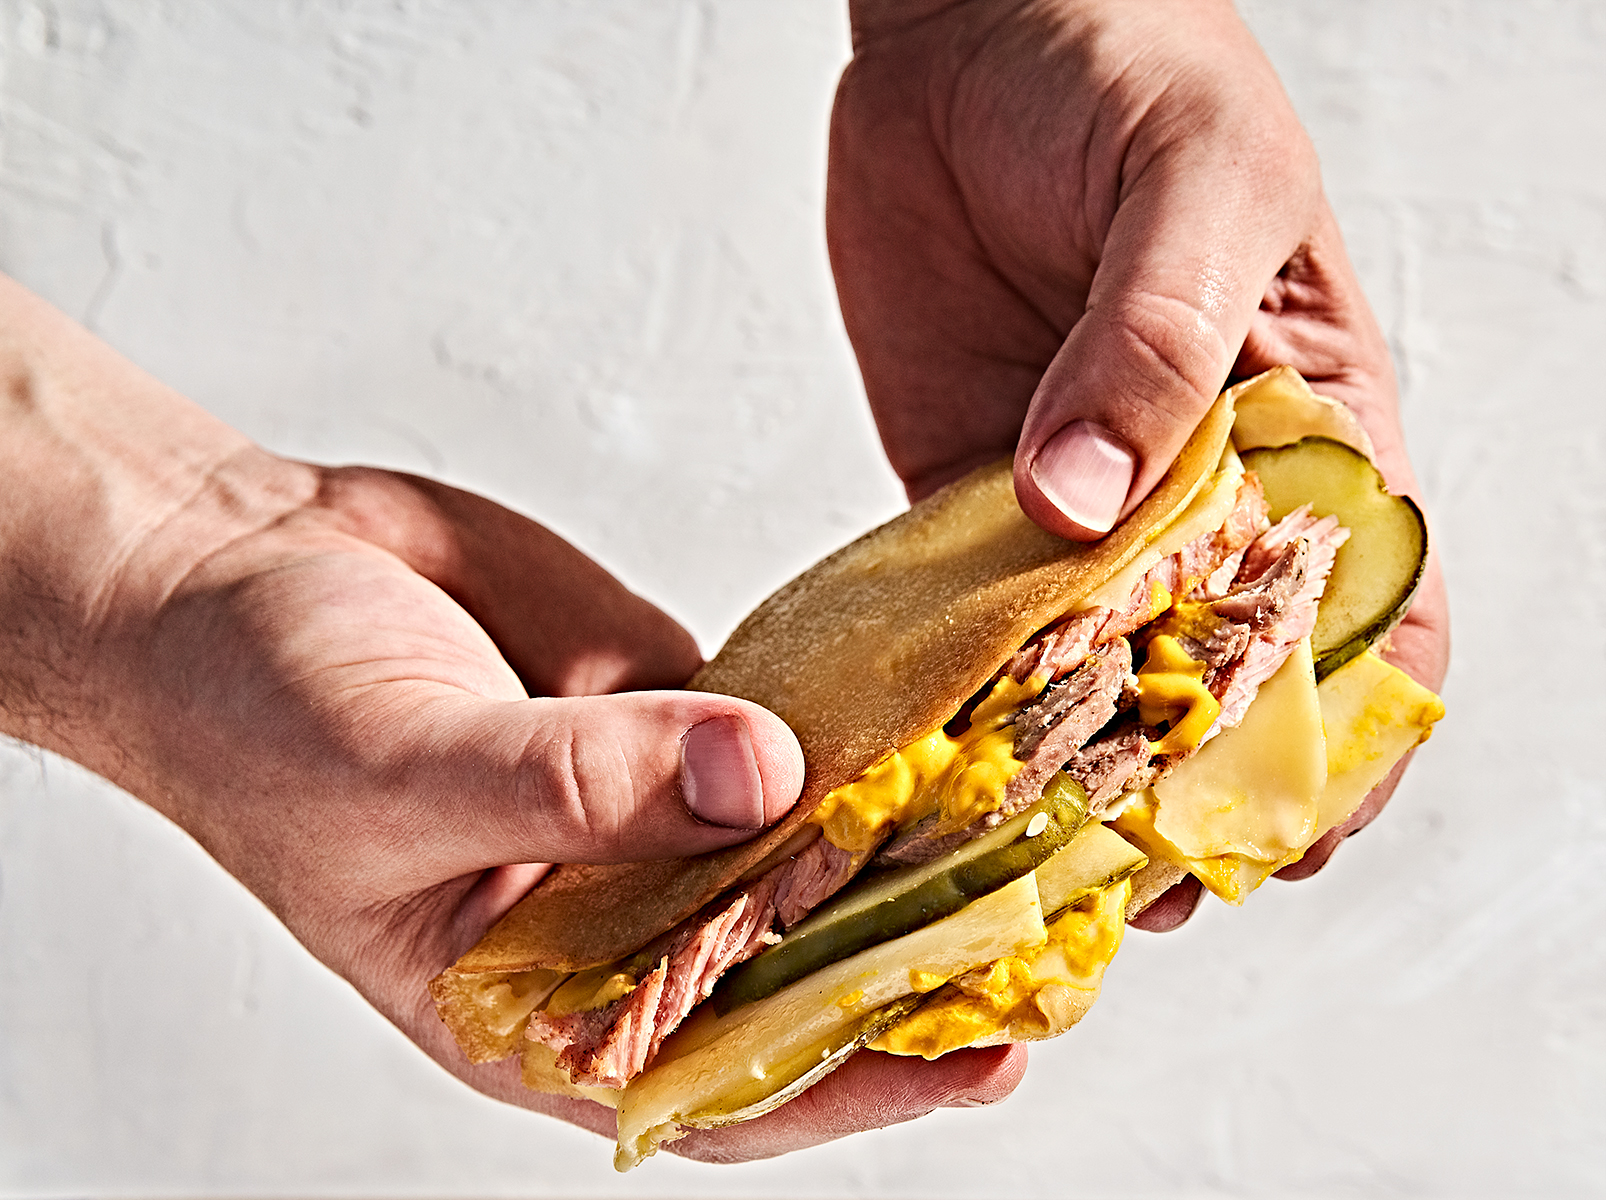 Man's hands holding a pressed gluten-free crepe cuban sandwich with ham, pork, mustard and pickles.